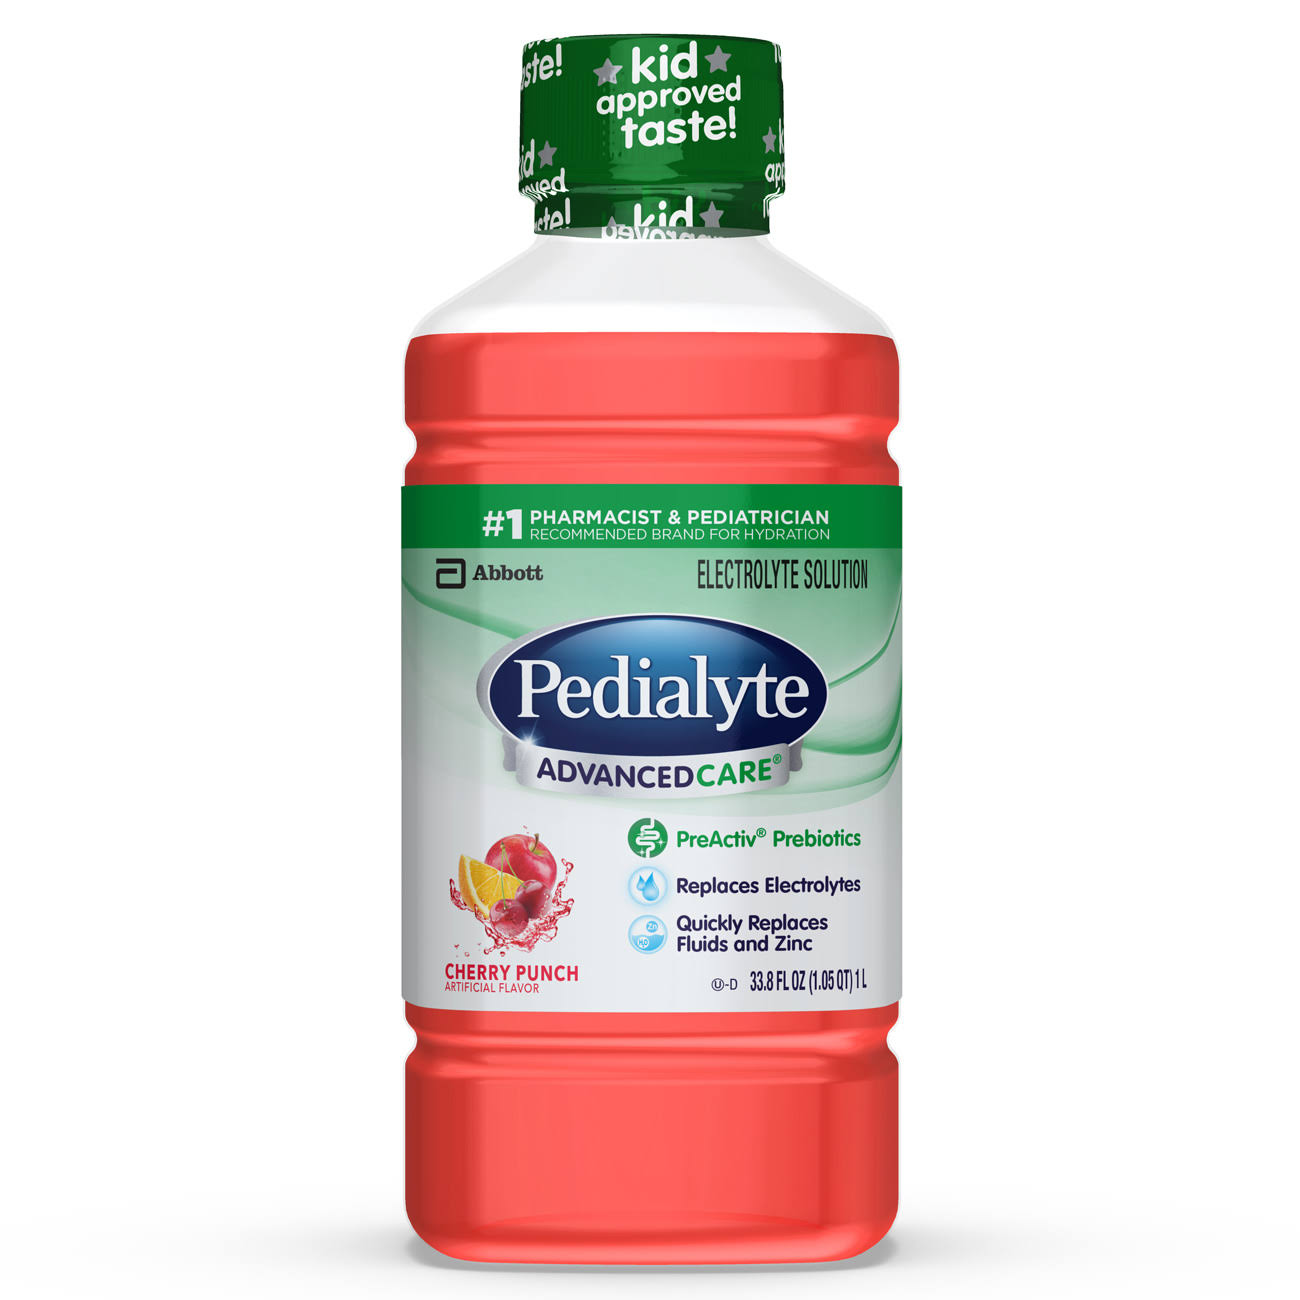 Abbott Pedialyte Advanced Care Cherry Punch Electrolyte Solution - 1L